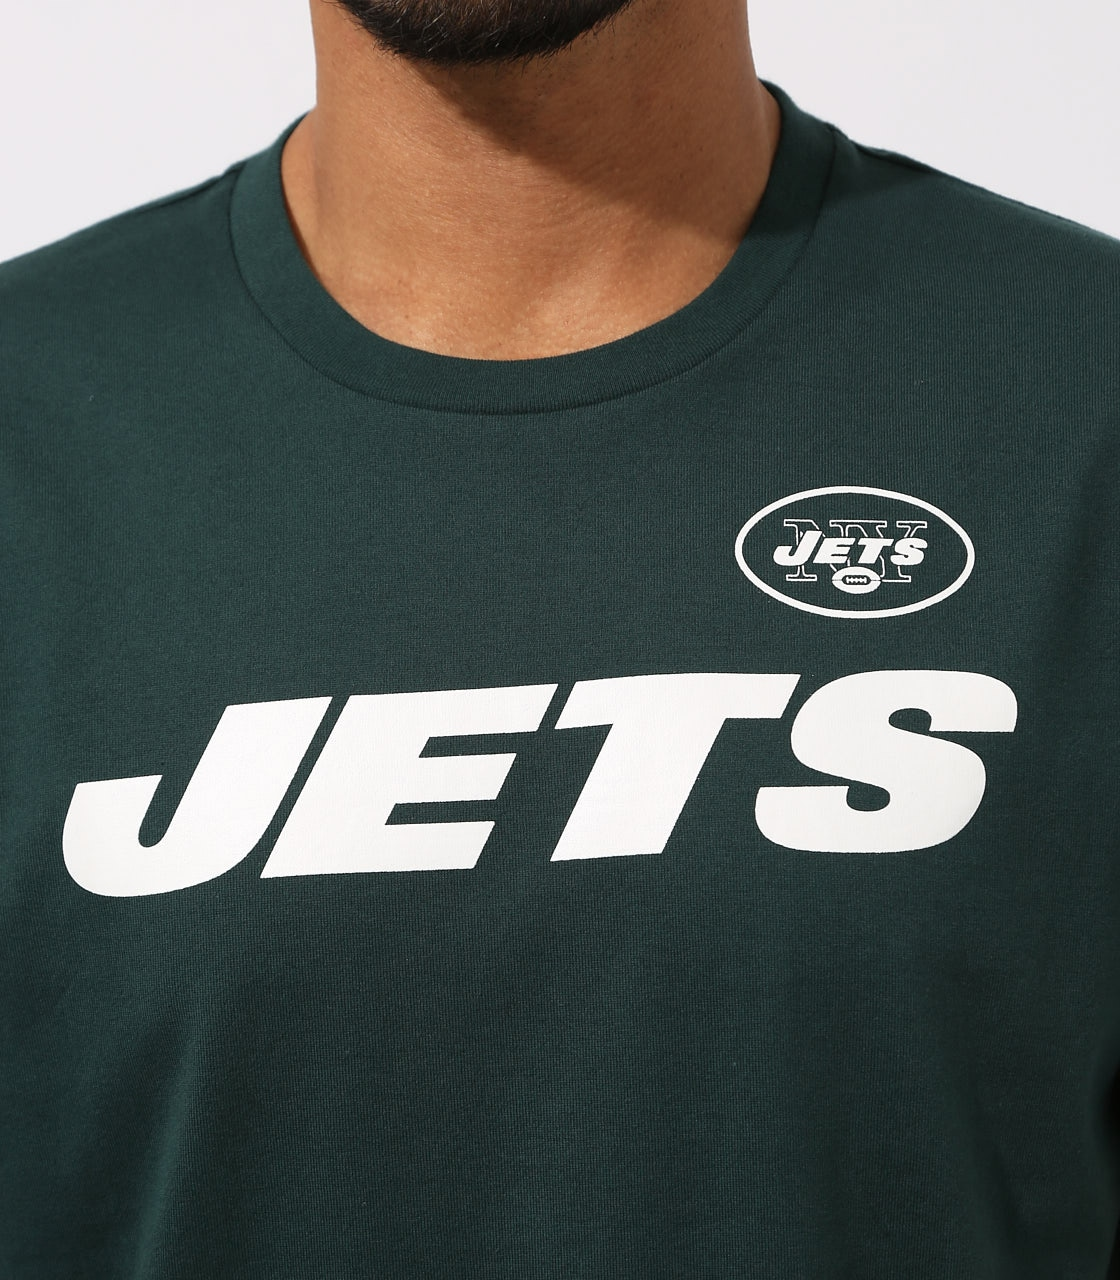 【AZUL BY MOUSSY】NFL JETS TEE 詳細画像 D/GRN 7